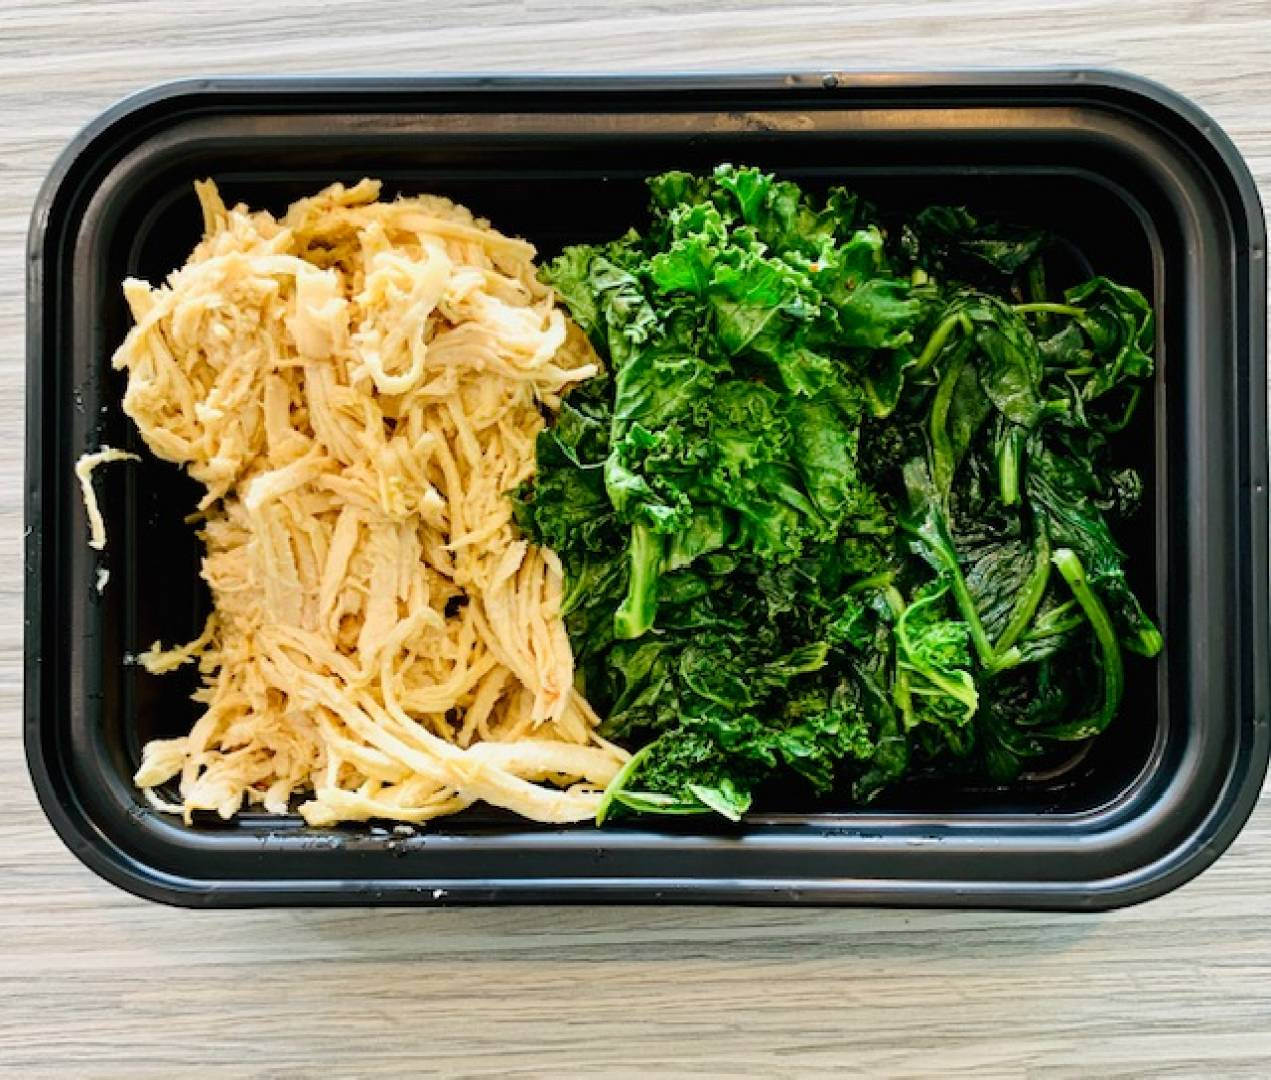 Shredded Chicken, Kale and Spinach